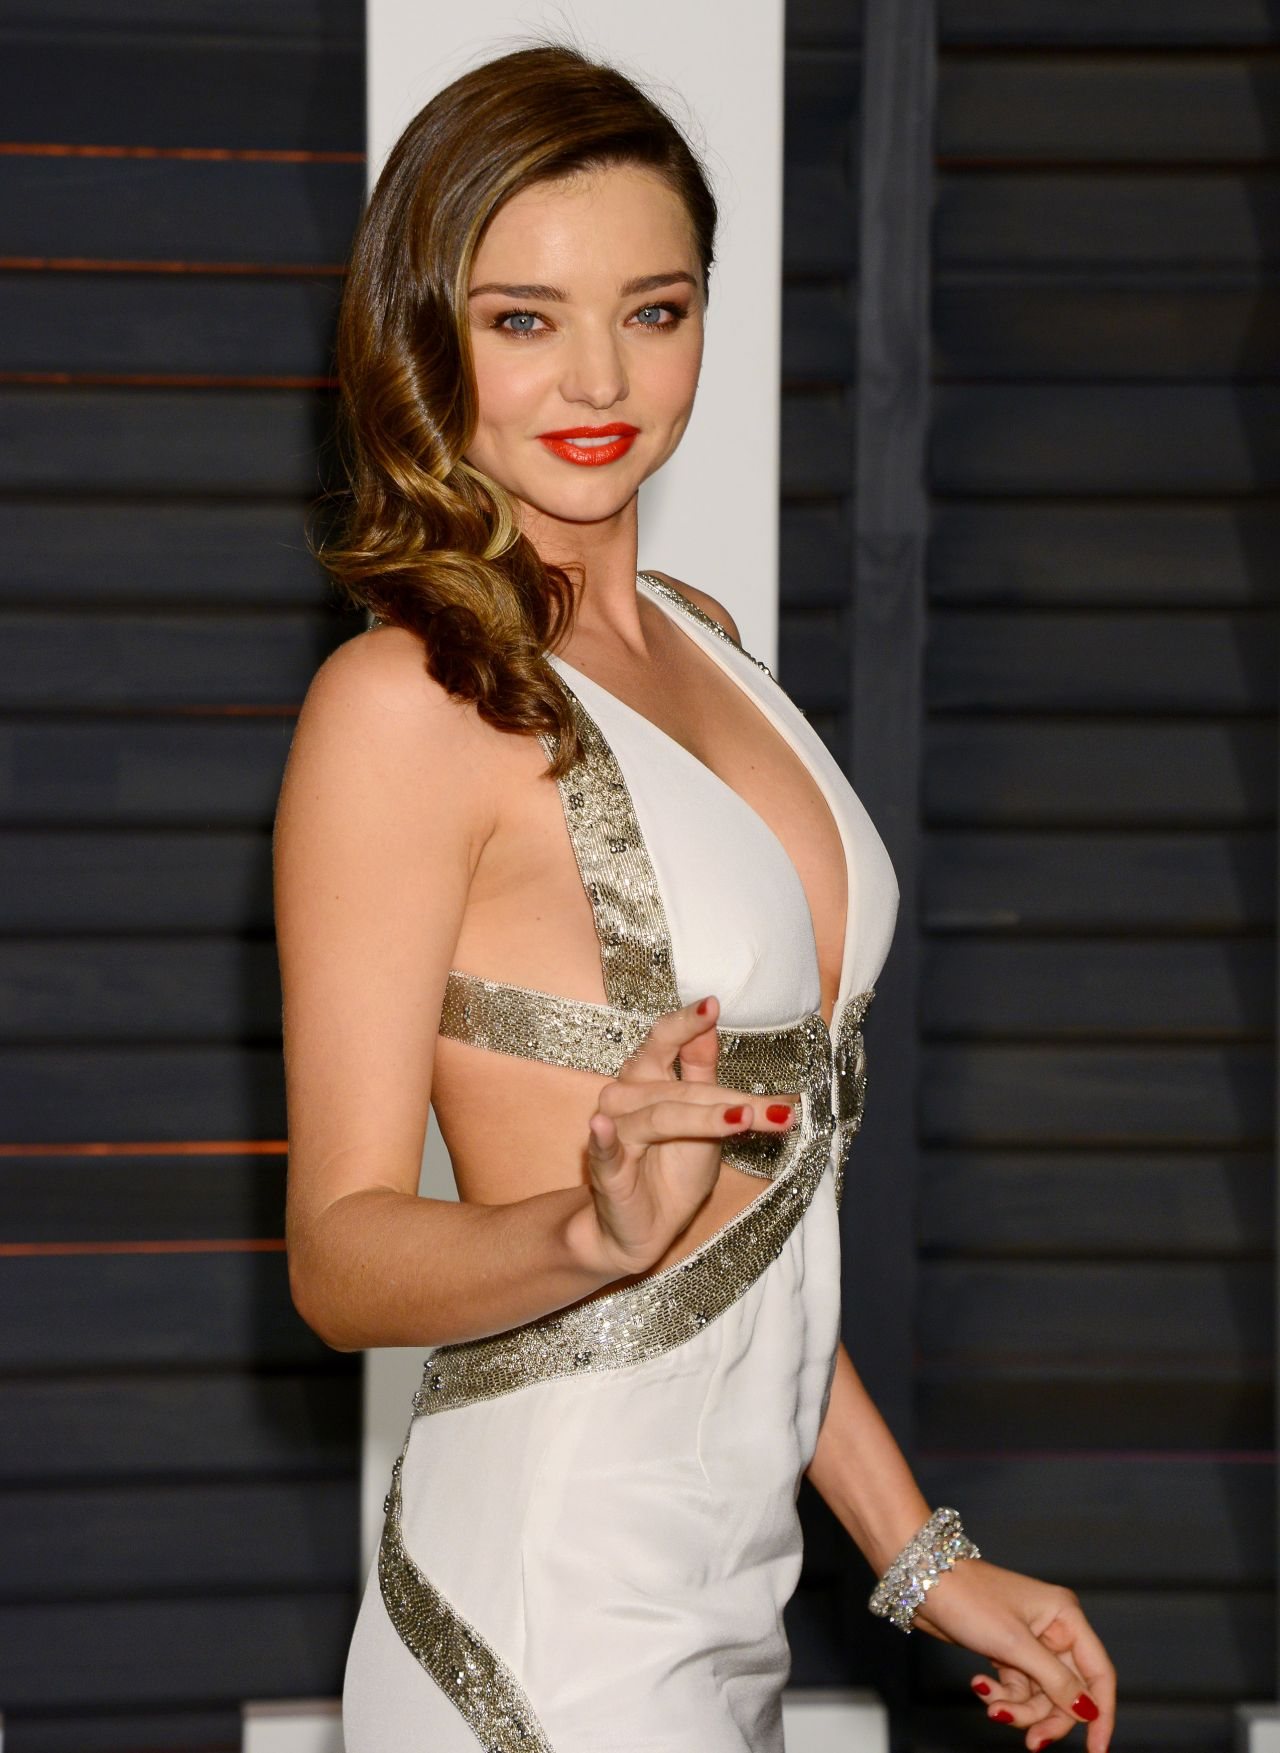 Miranda Kerr Hot Photos, Sexy Topless Pics & Videos